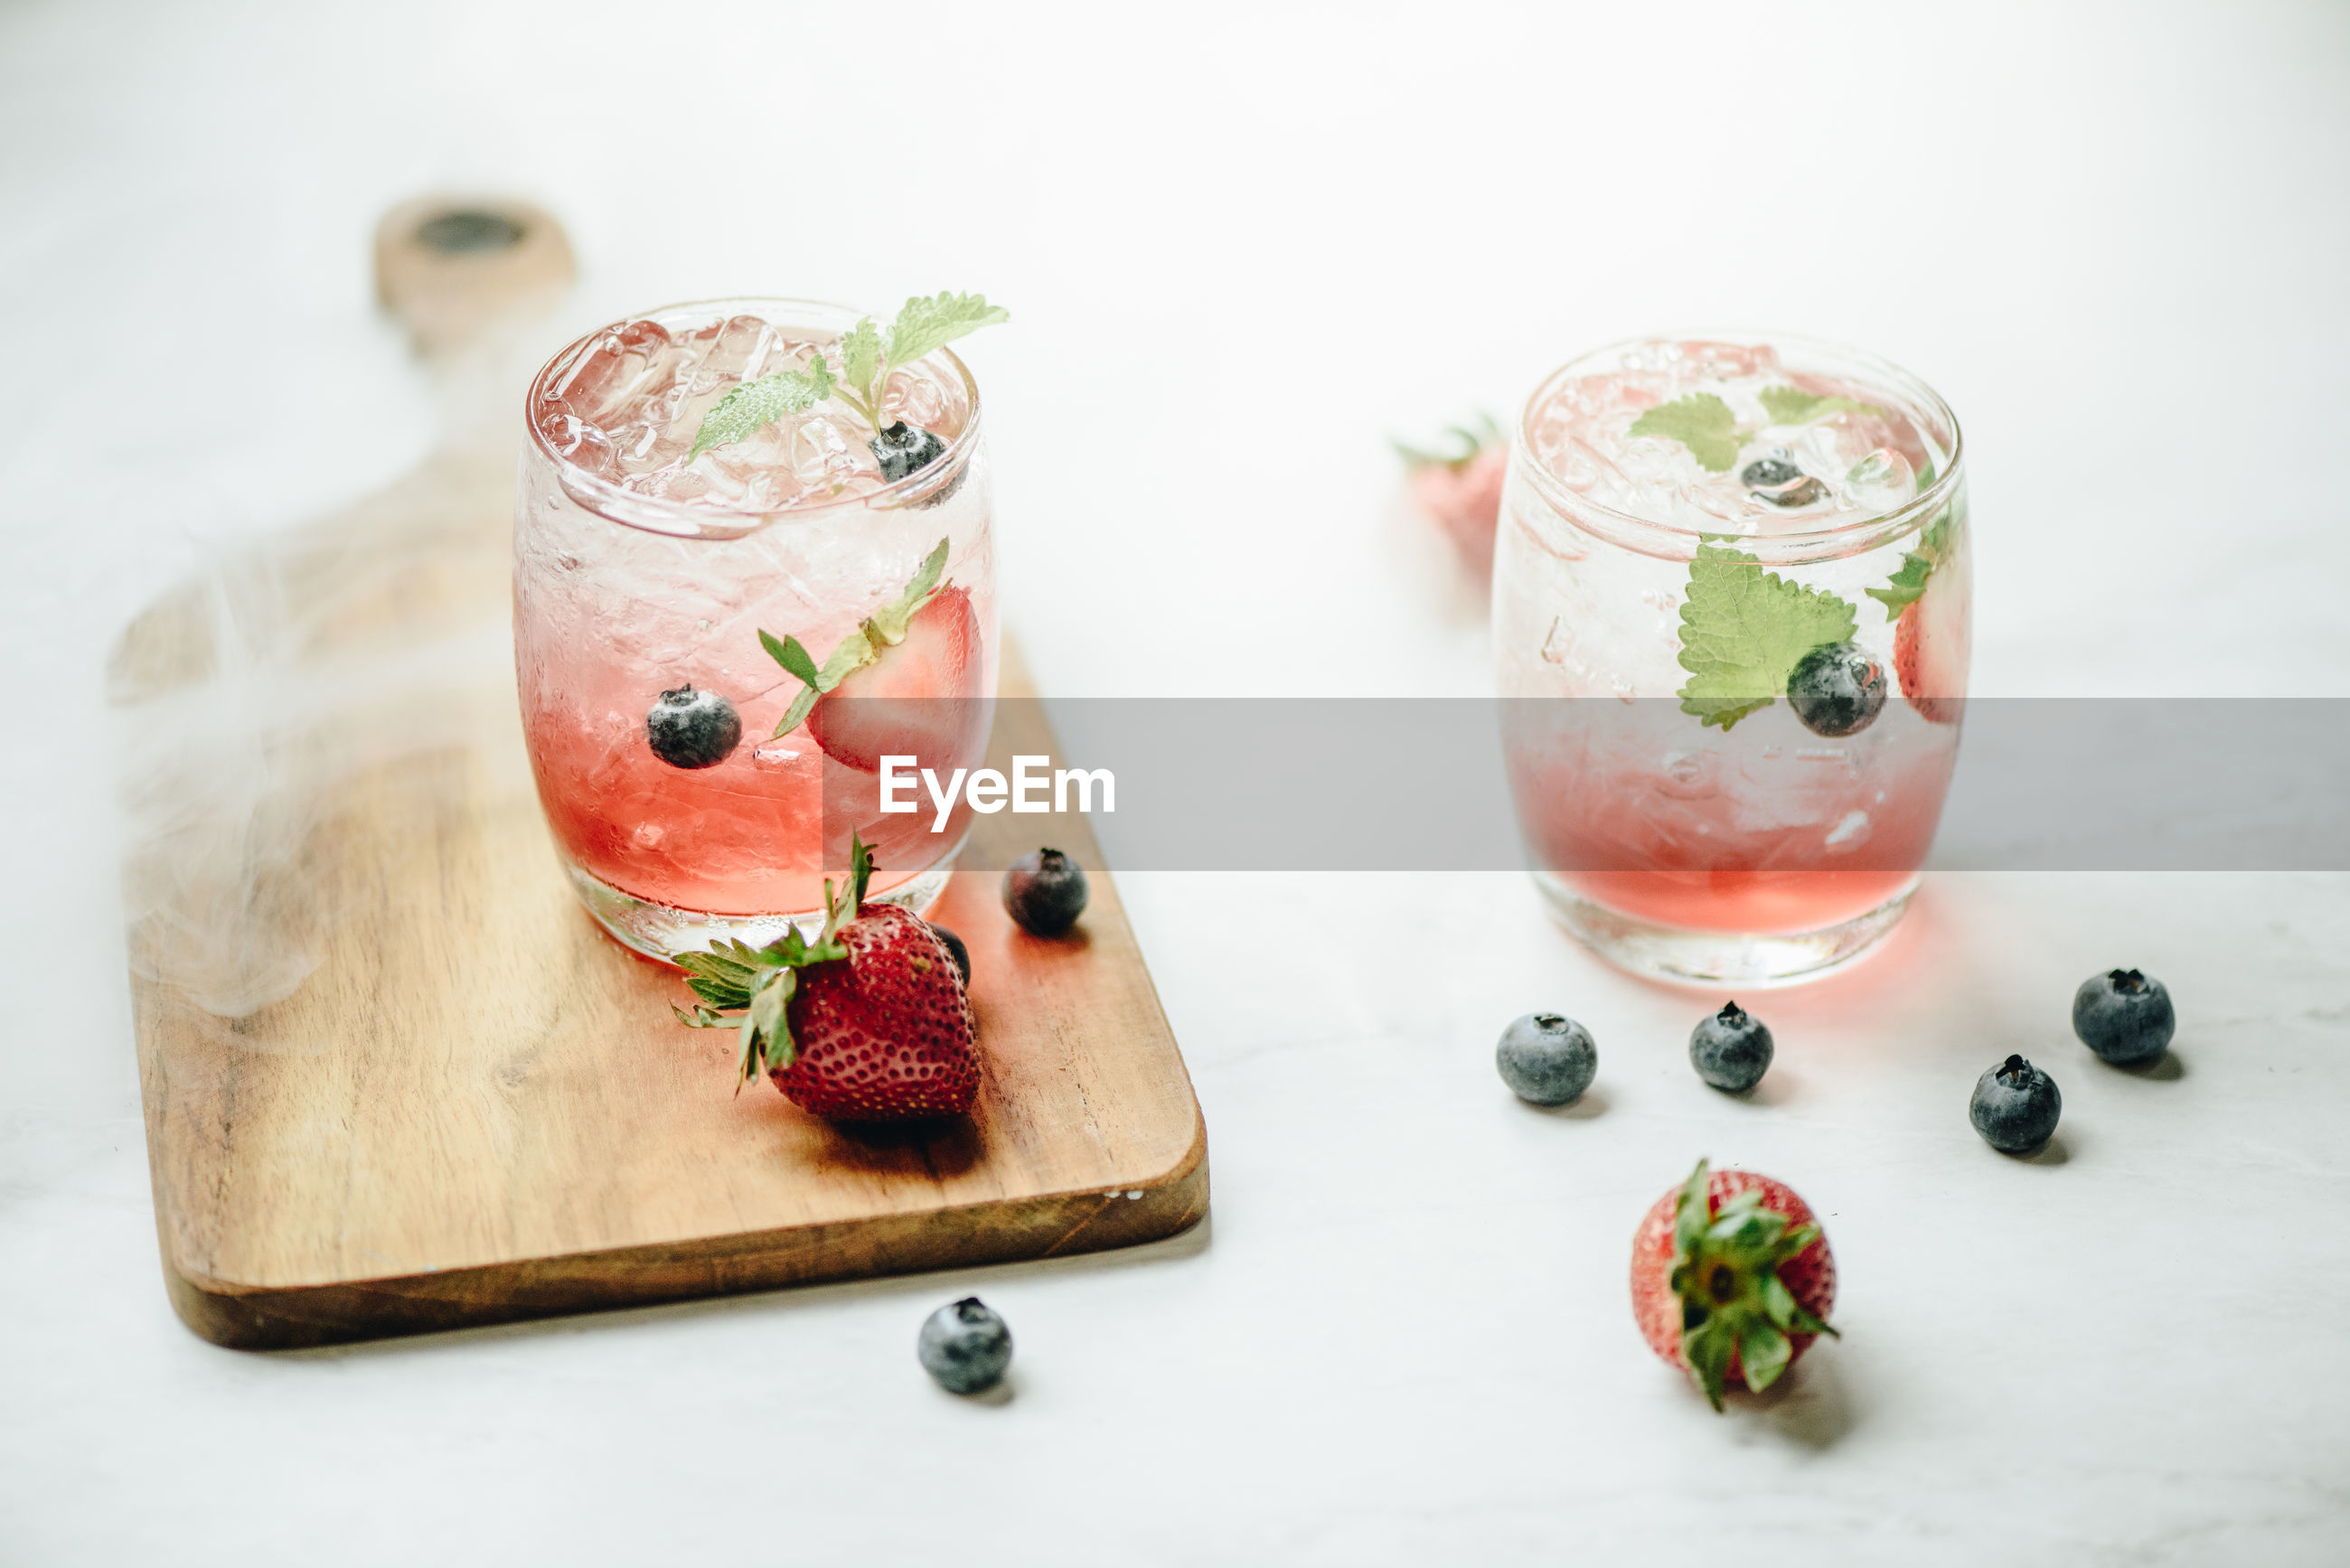 Close-up of drinks with strawberries and blueberries served on table